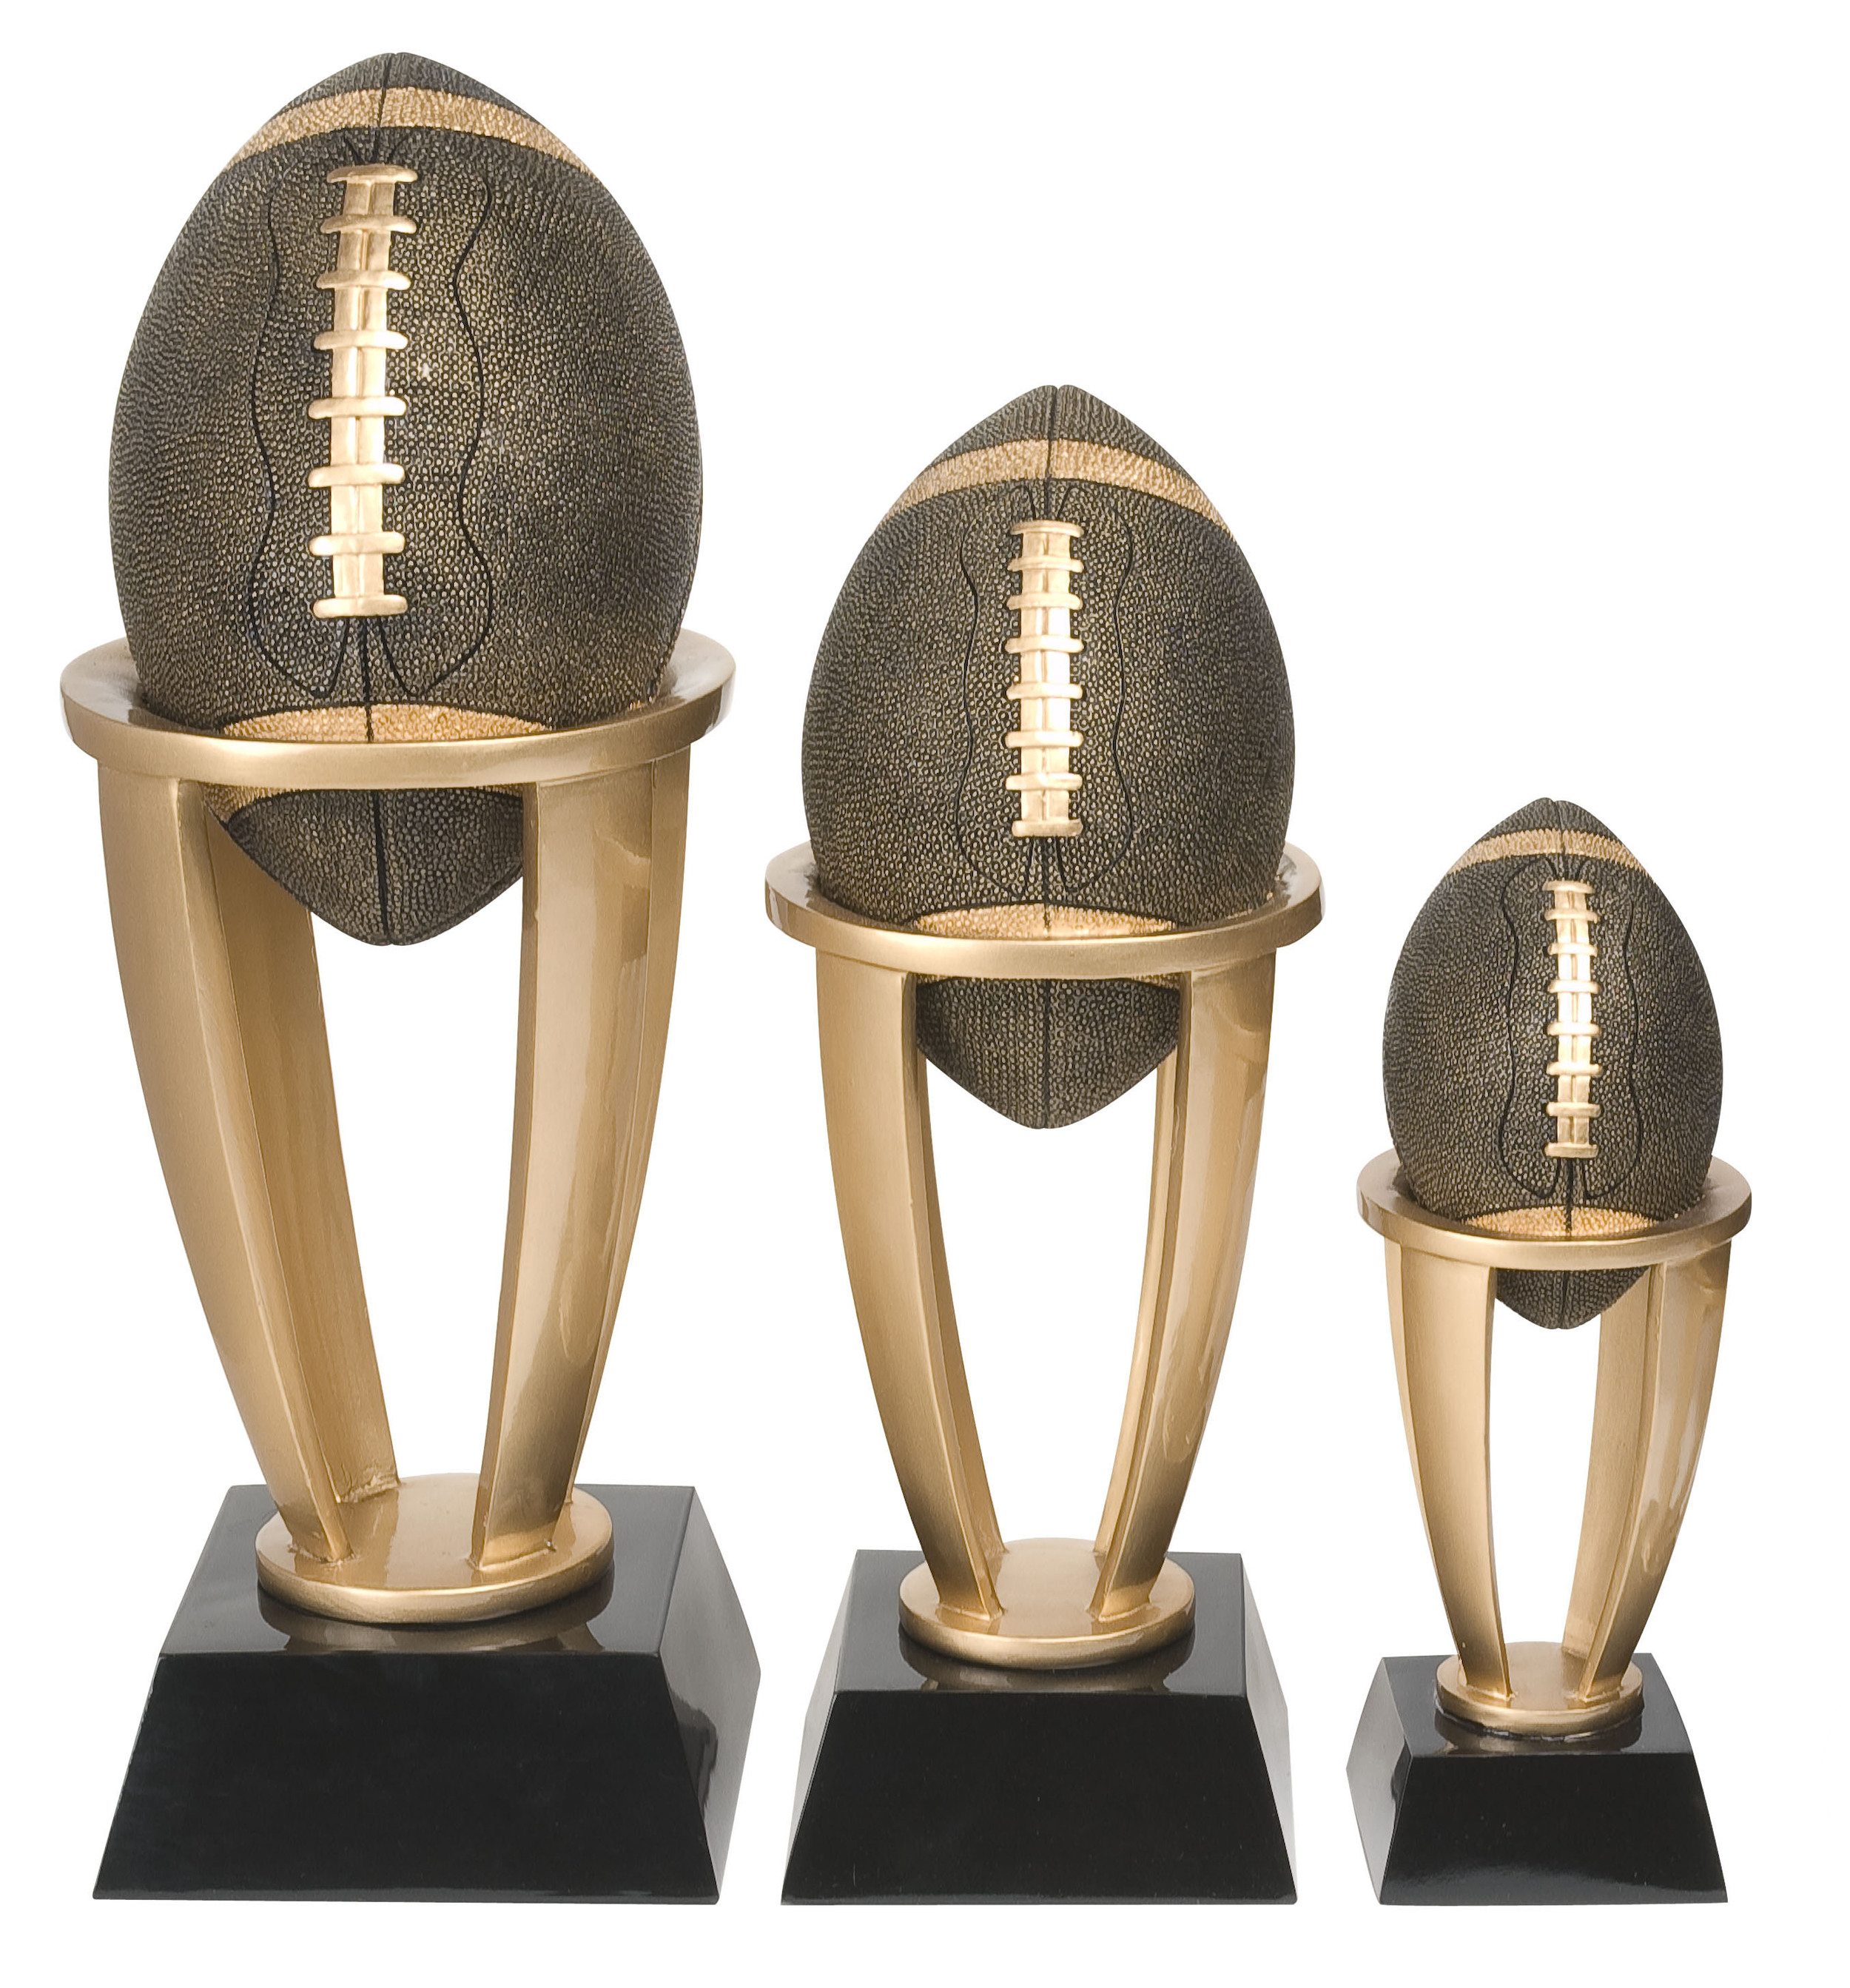 Football Tower Group:   Large - TRA-25  Medium - TRB-25  Small - TRC-25